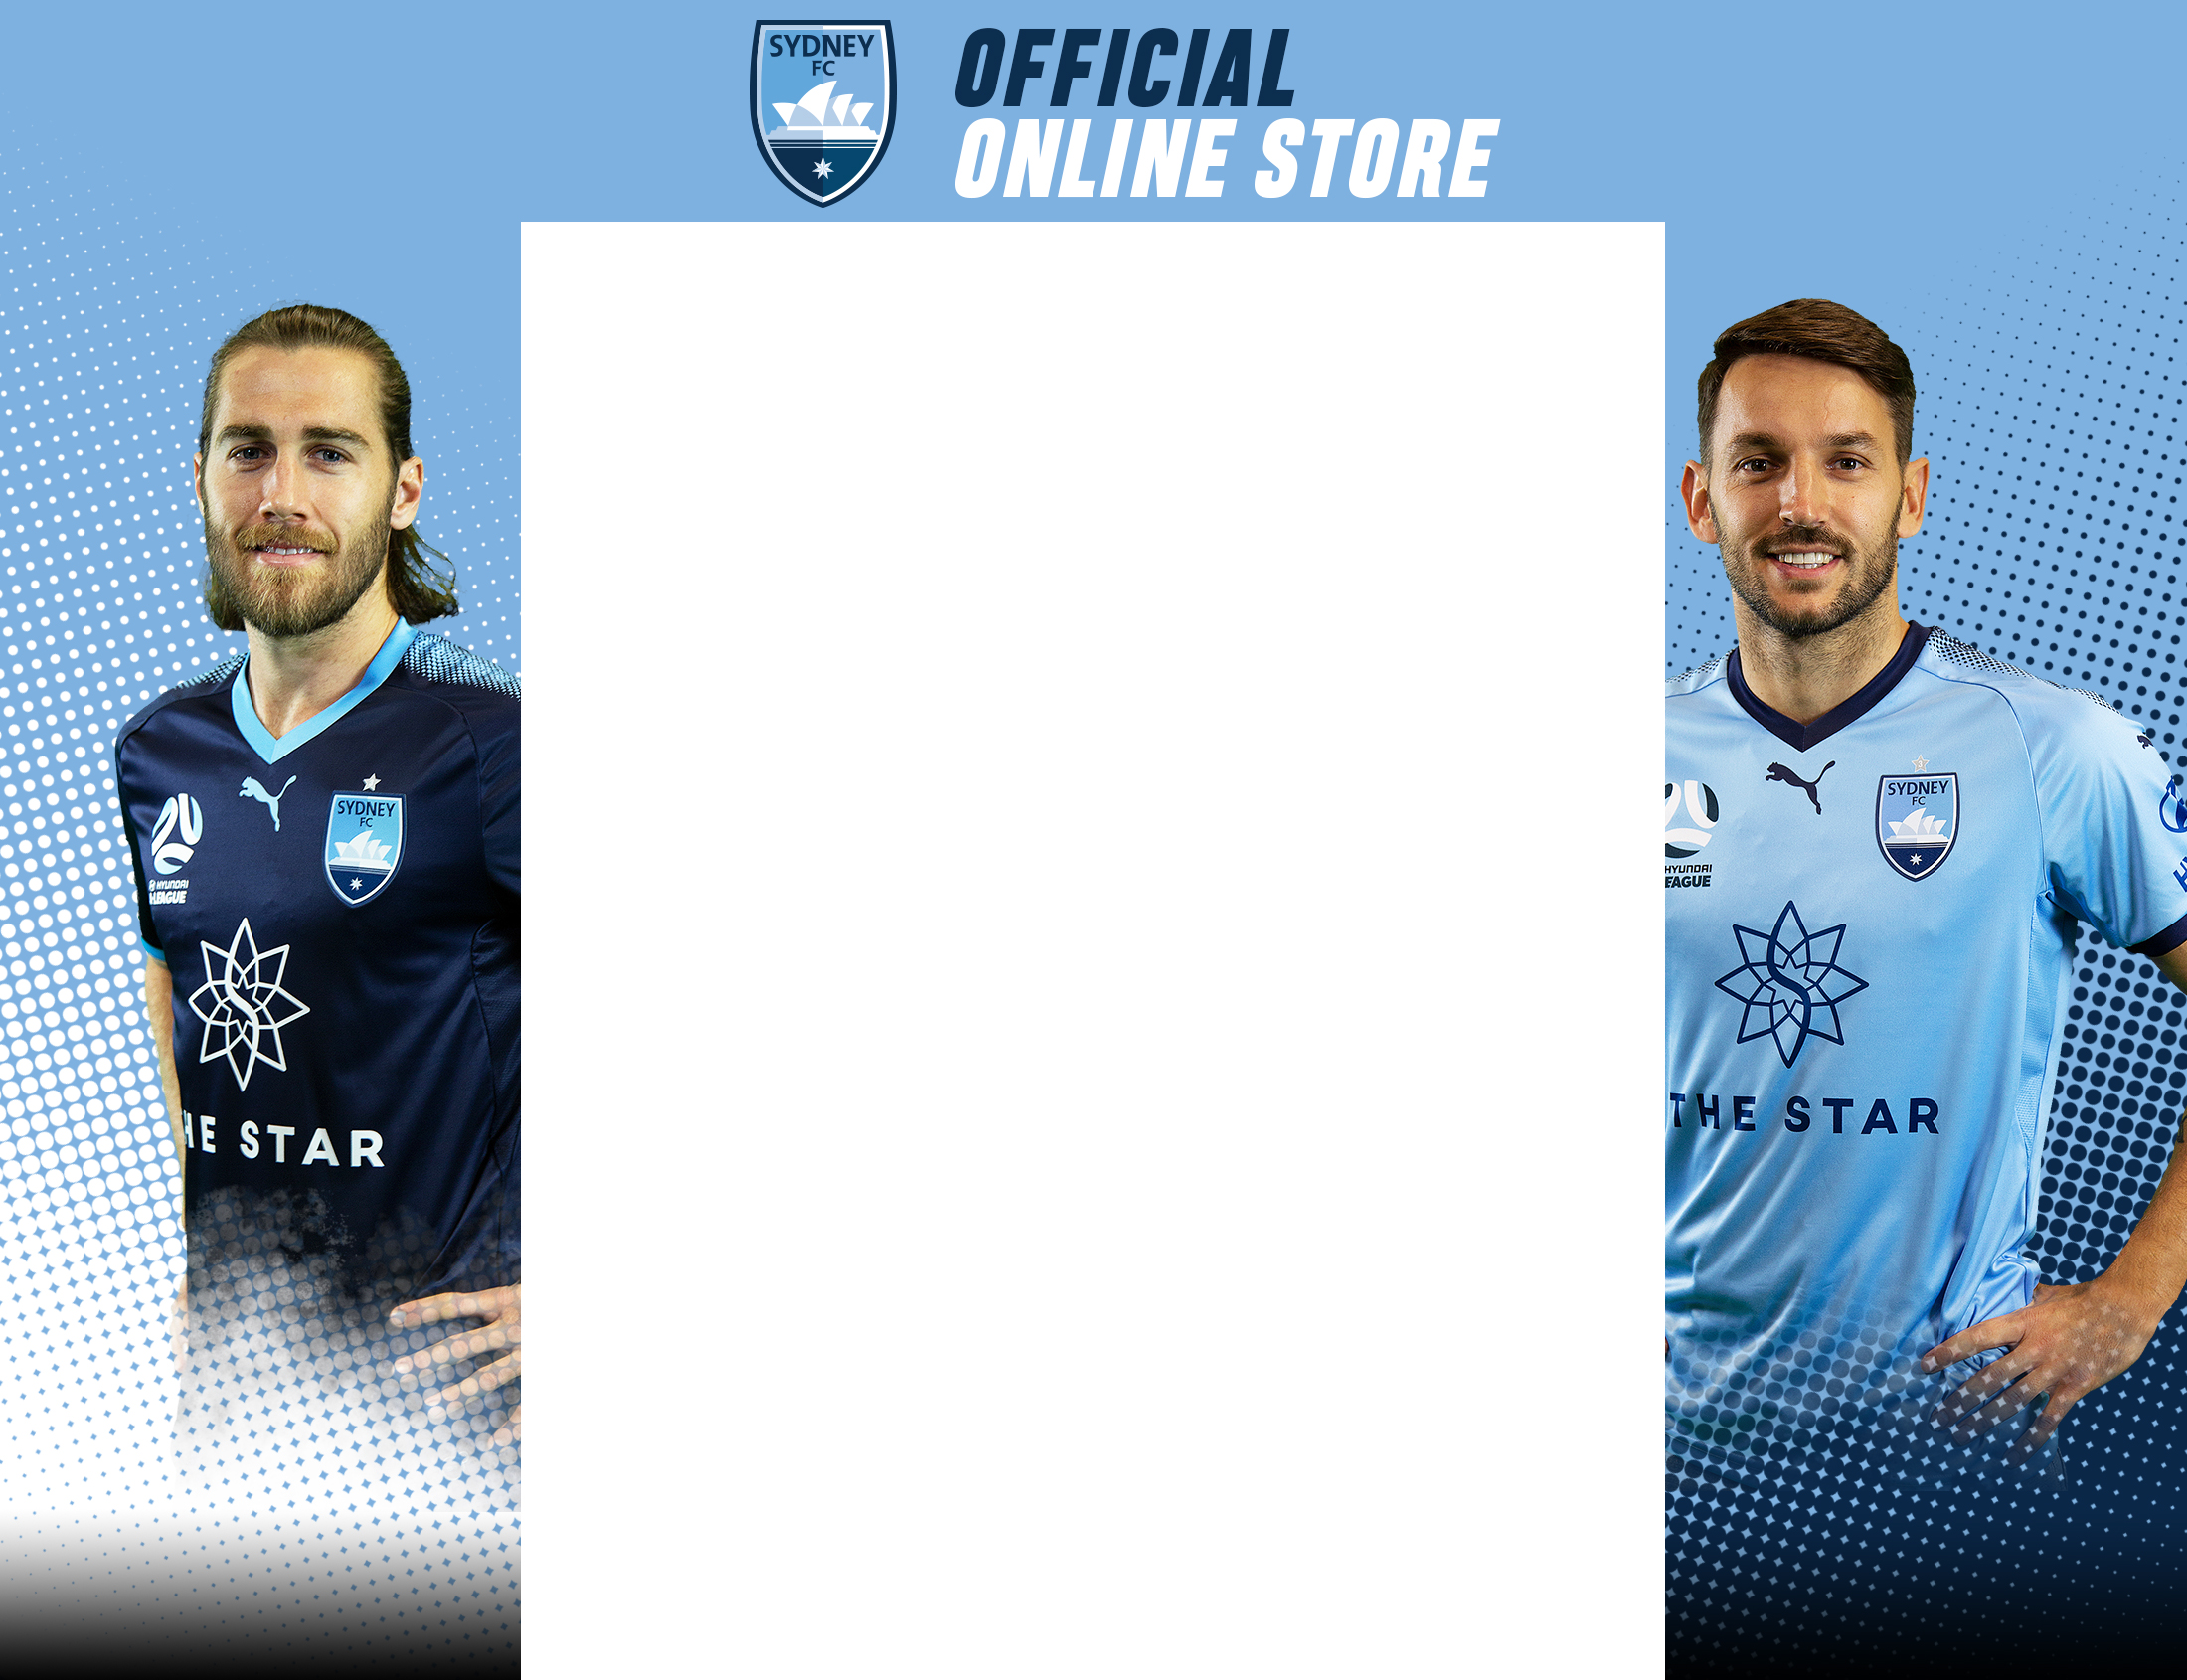 sydneyfc-2018-background3.jpg